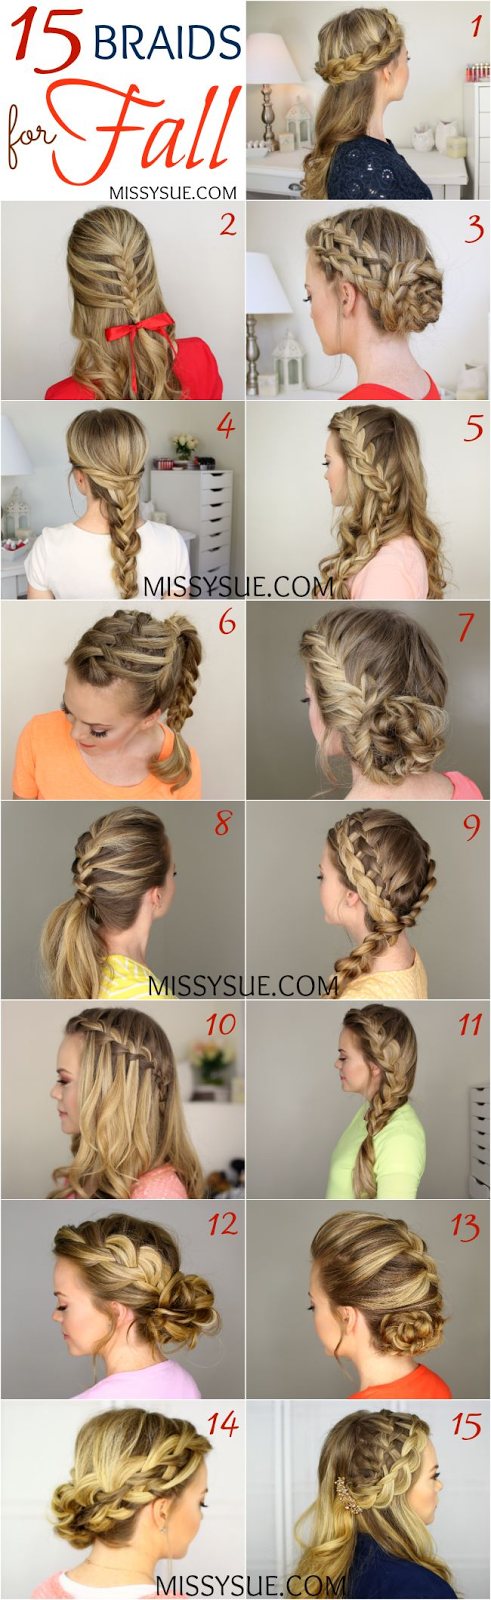 Fall Hairstyles:15 Braids for Fall